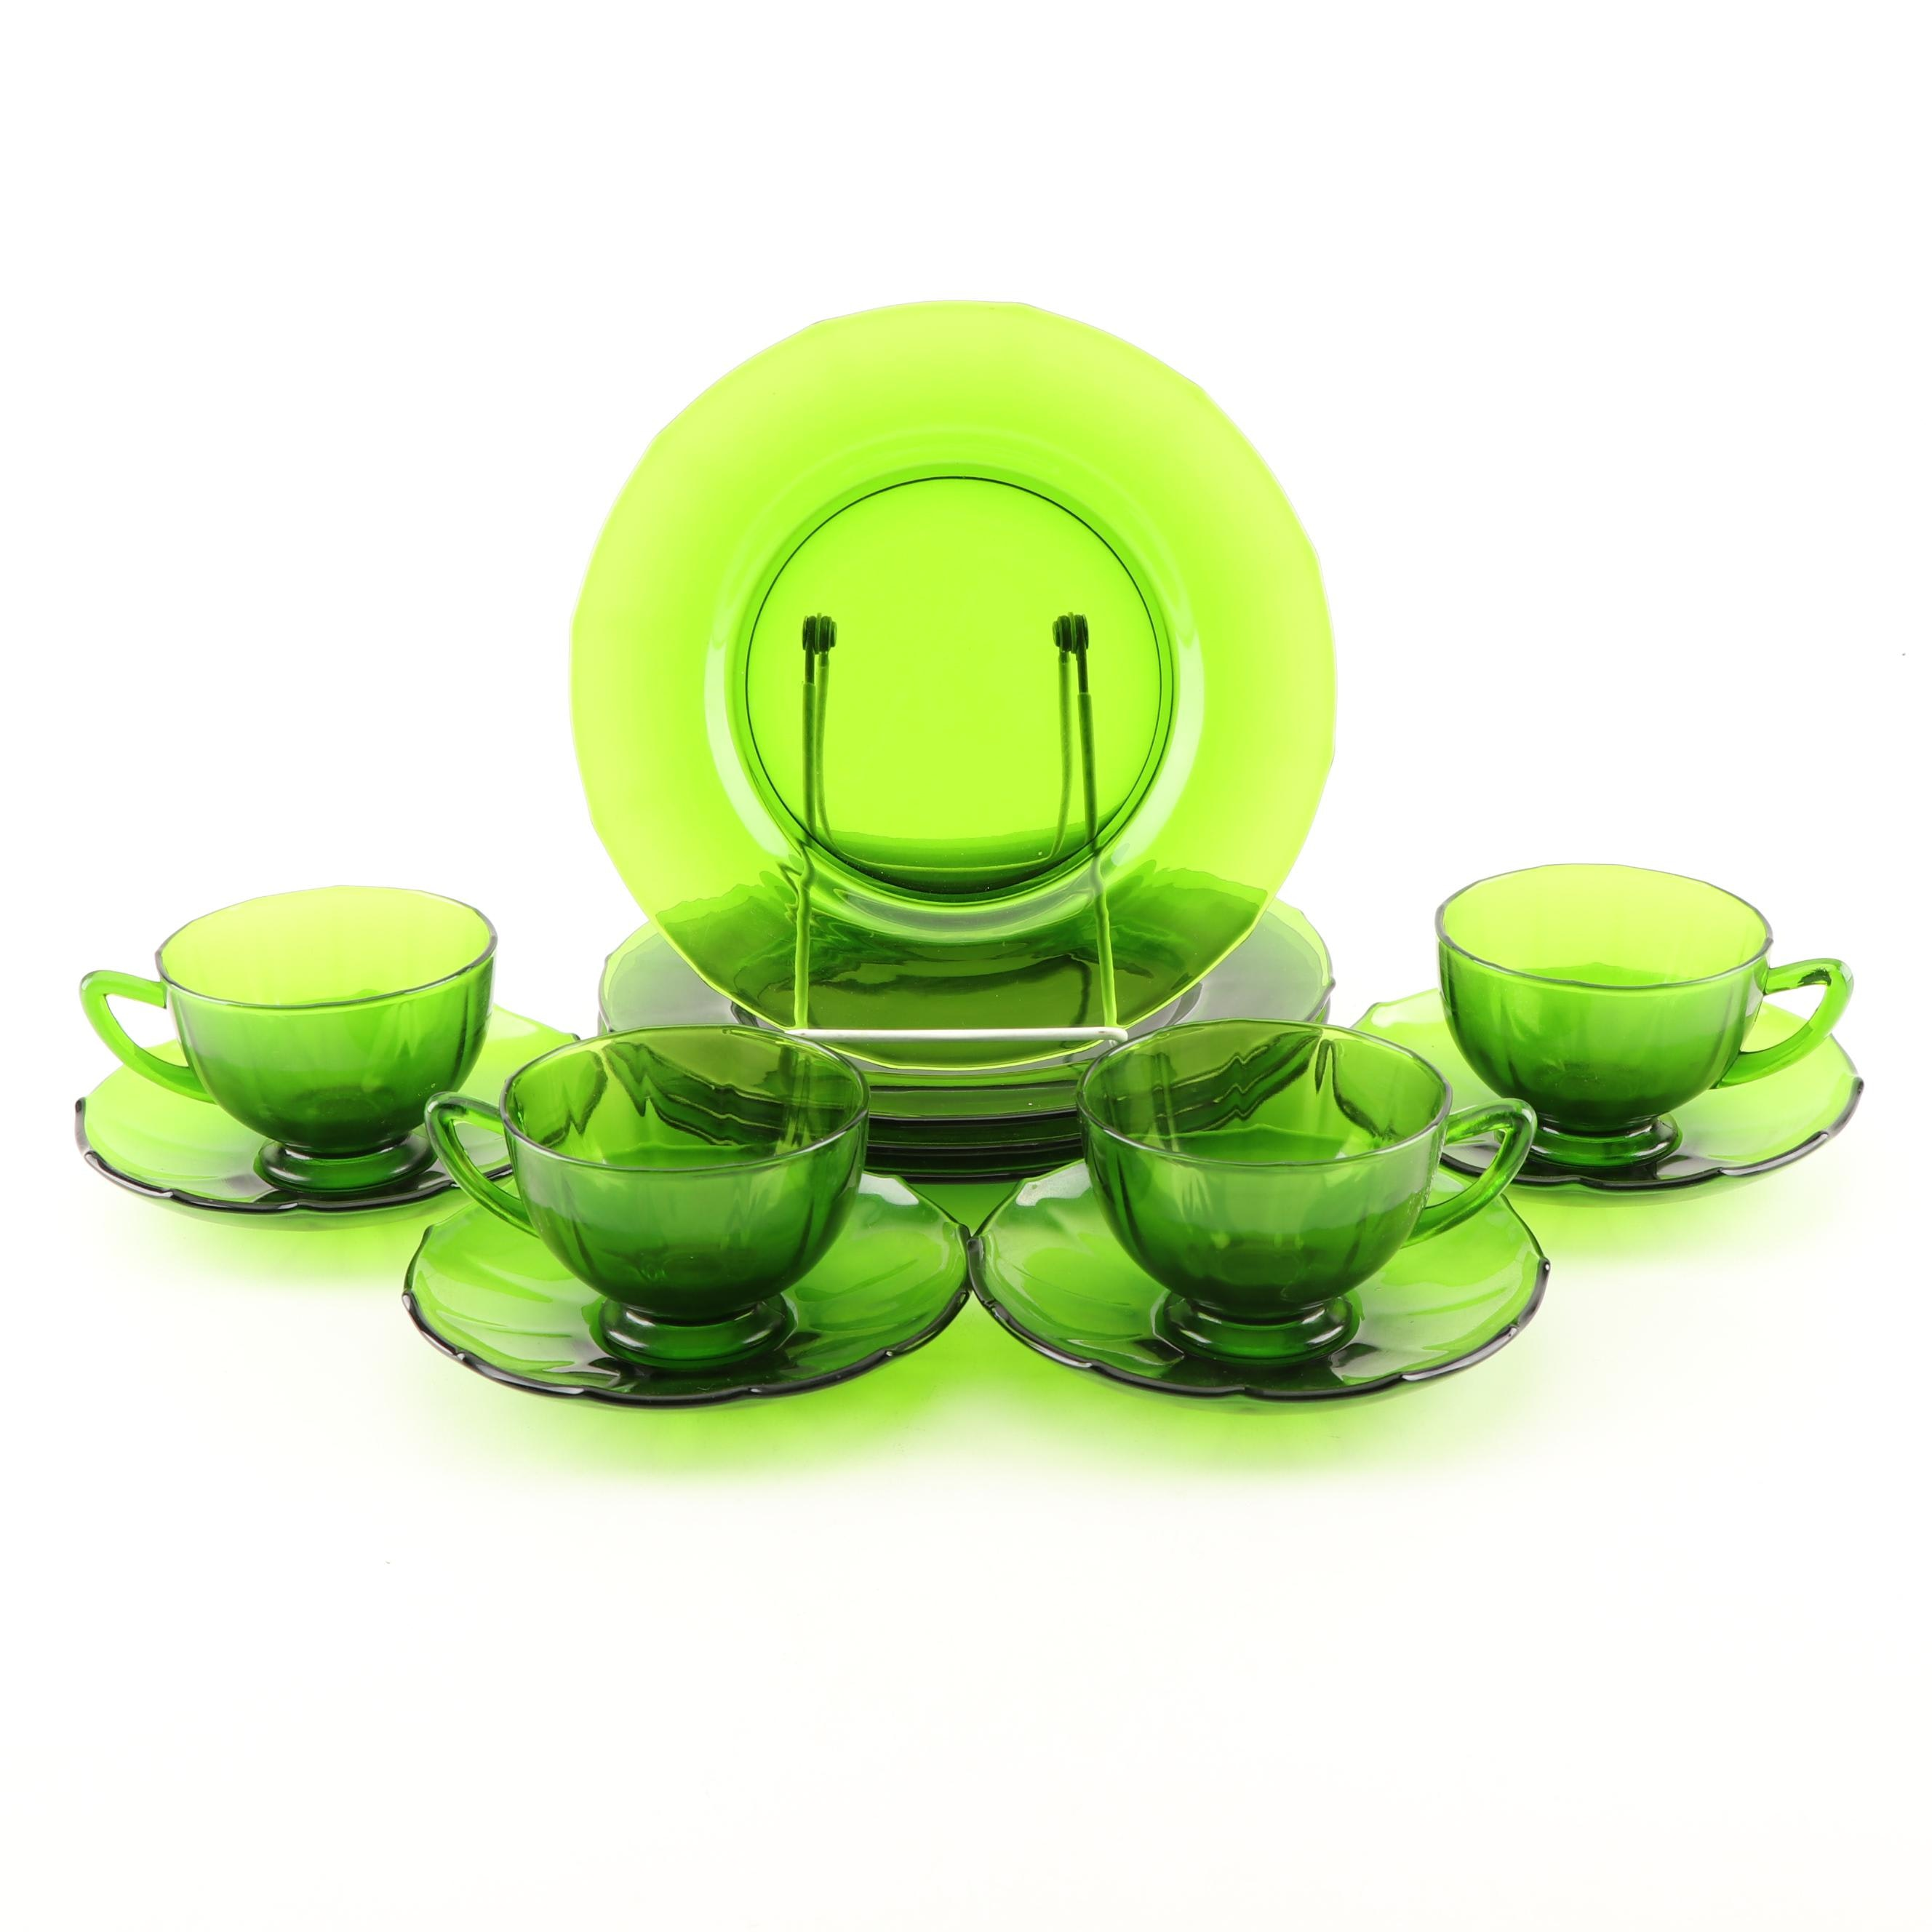 Emerald Glass Teacups, Saucers and Dessert Plates